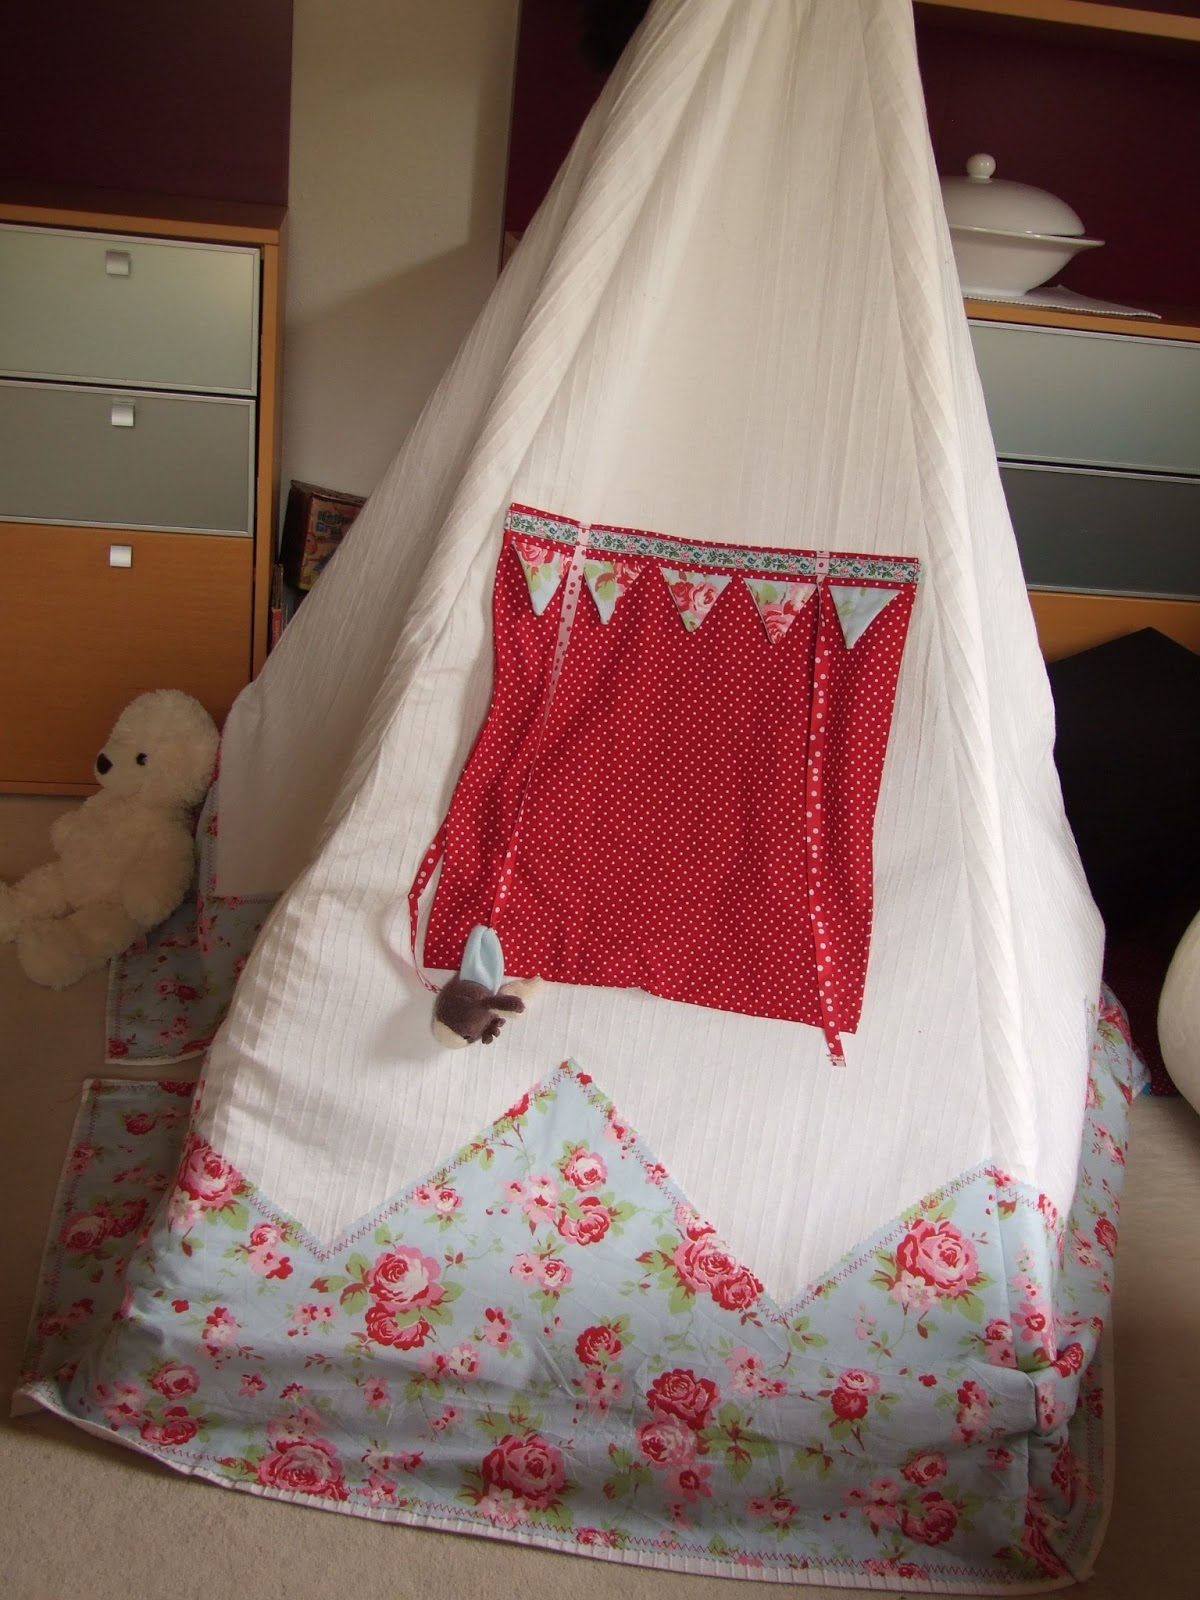 waldm rzchen ein tipi n hen hei geliebtes kinderzelt. Black Bedroom Furniture Sets. Home Design Ideas